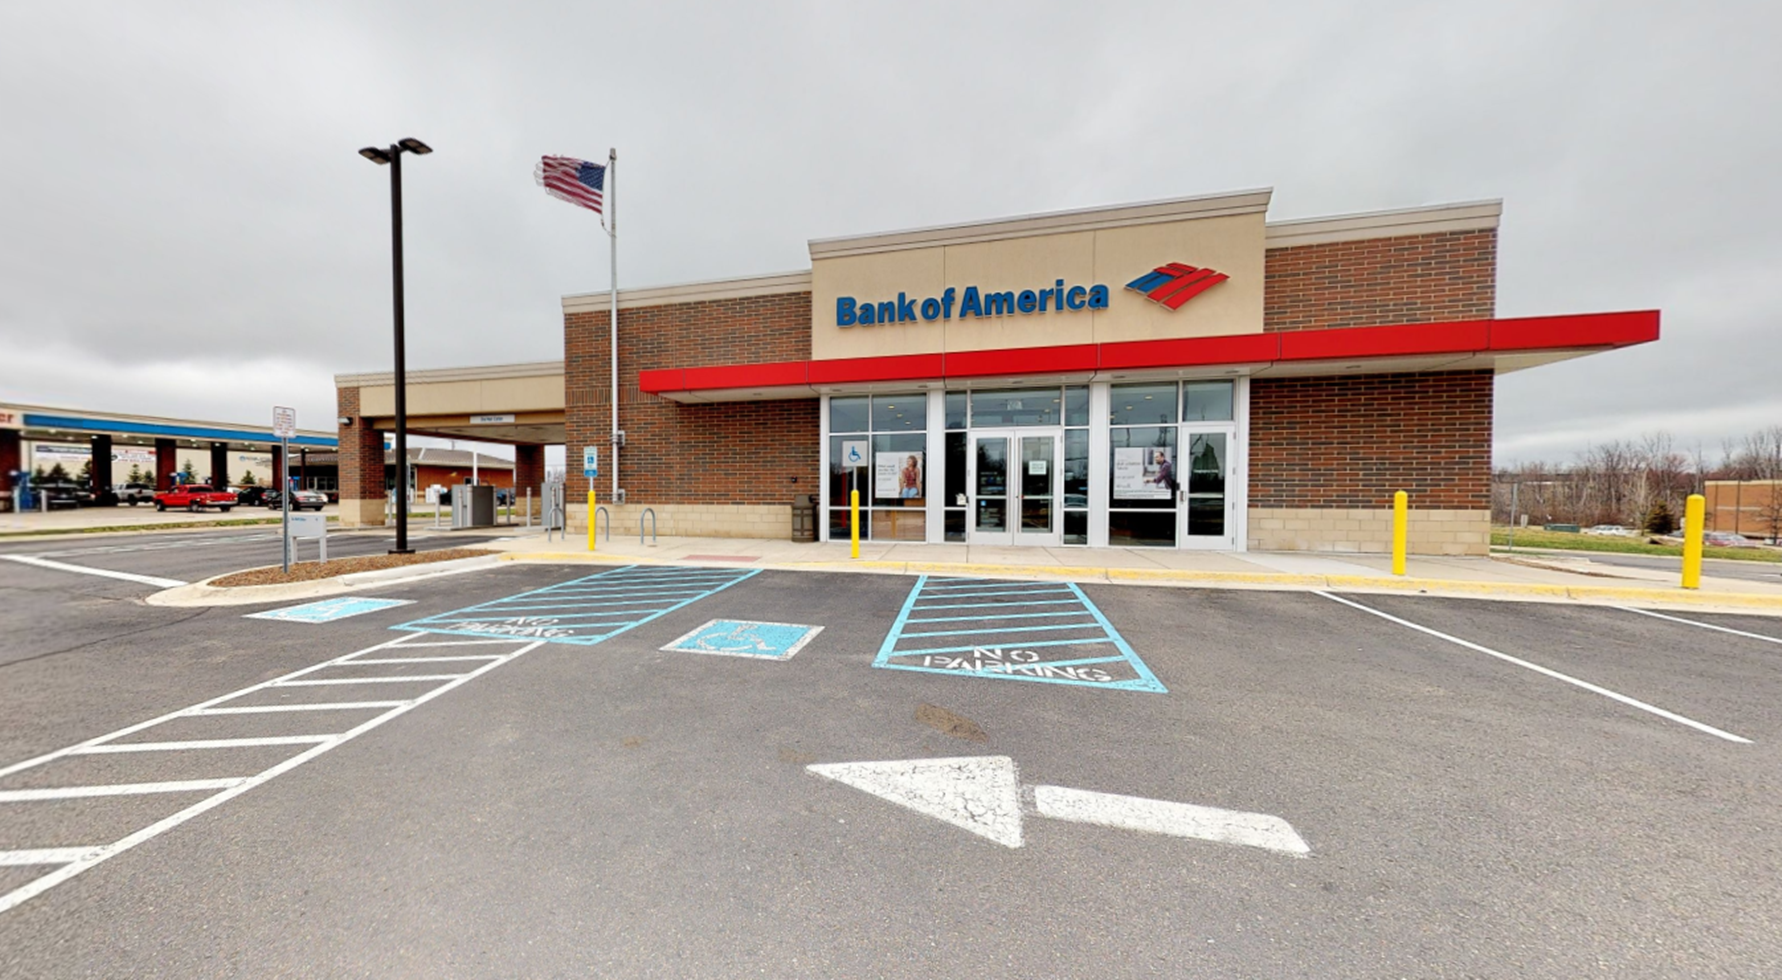 Bank of America financial center with drive-thru ATM   2748 S Adams Rd, Rochester Hills, MI 48309